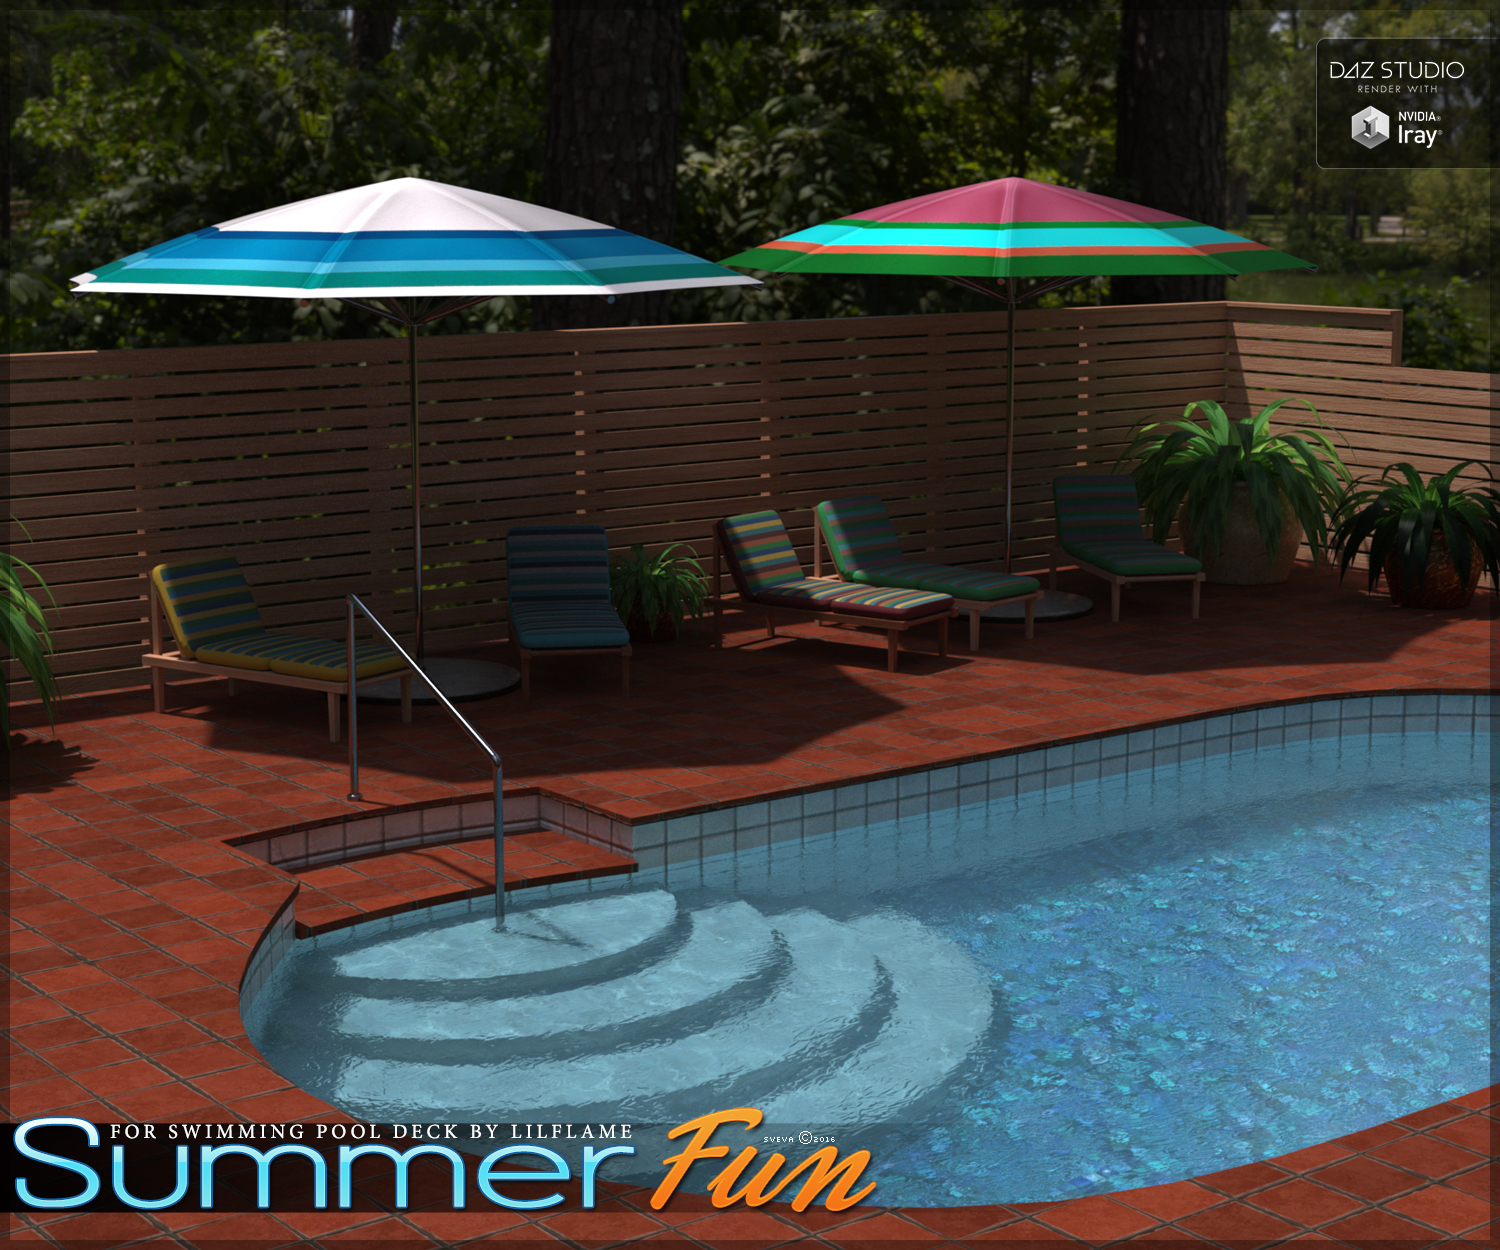 Summer Fun for Swimming Pool Deck